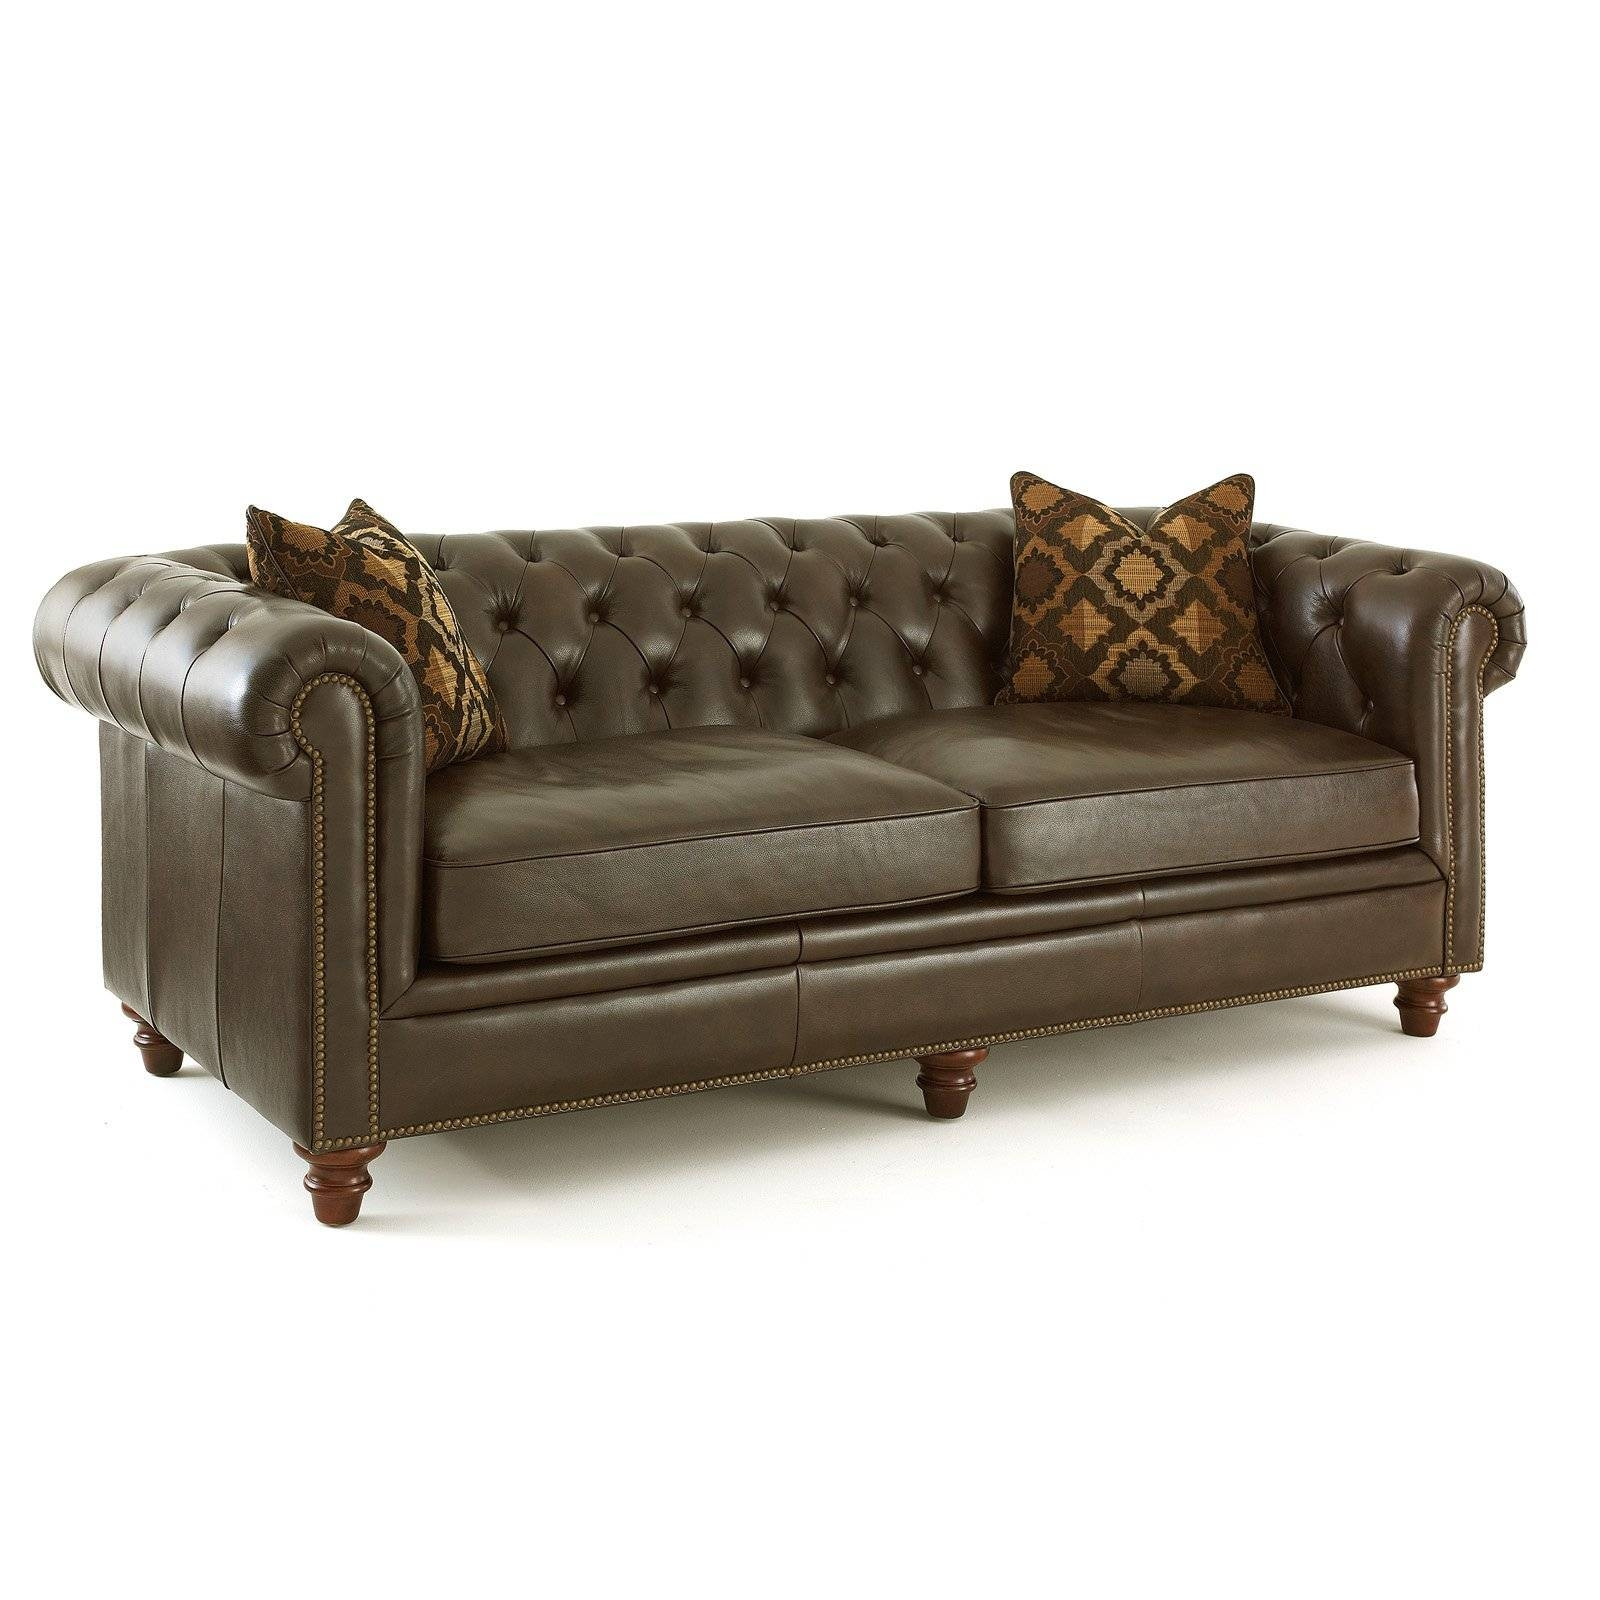 Fancy Barcalounger Sofa 88 For Your Sofas And Couches Ideas With with regard to Barcalounger Sofas (Image 15 of 15)